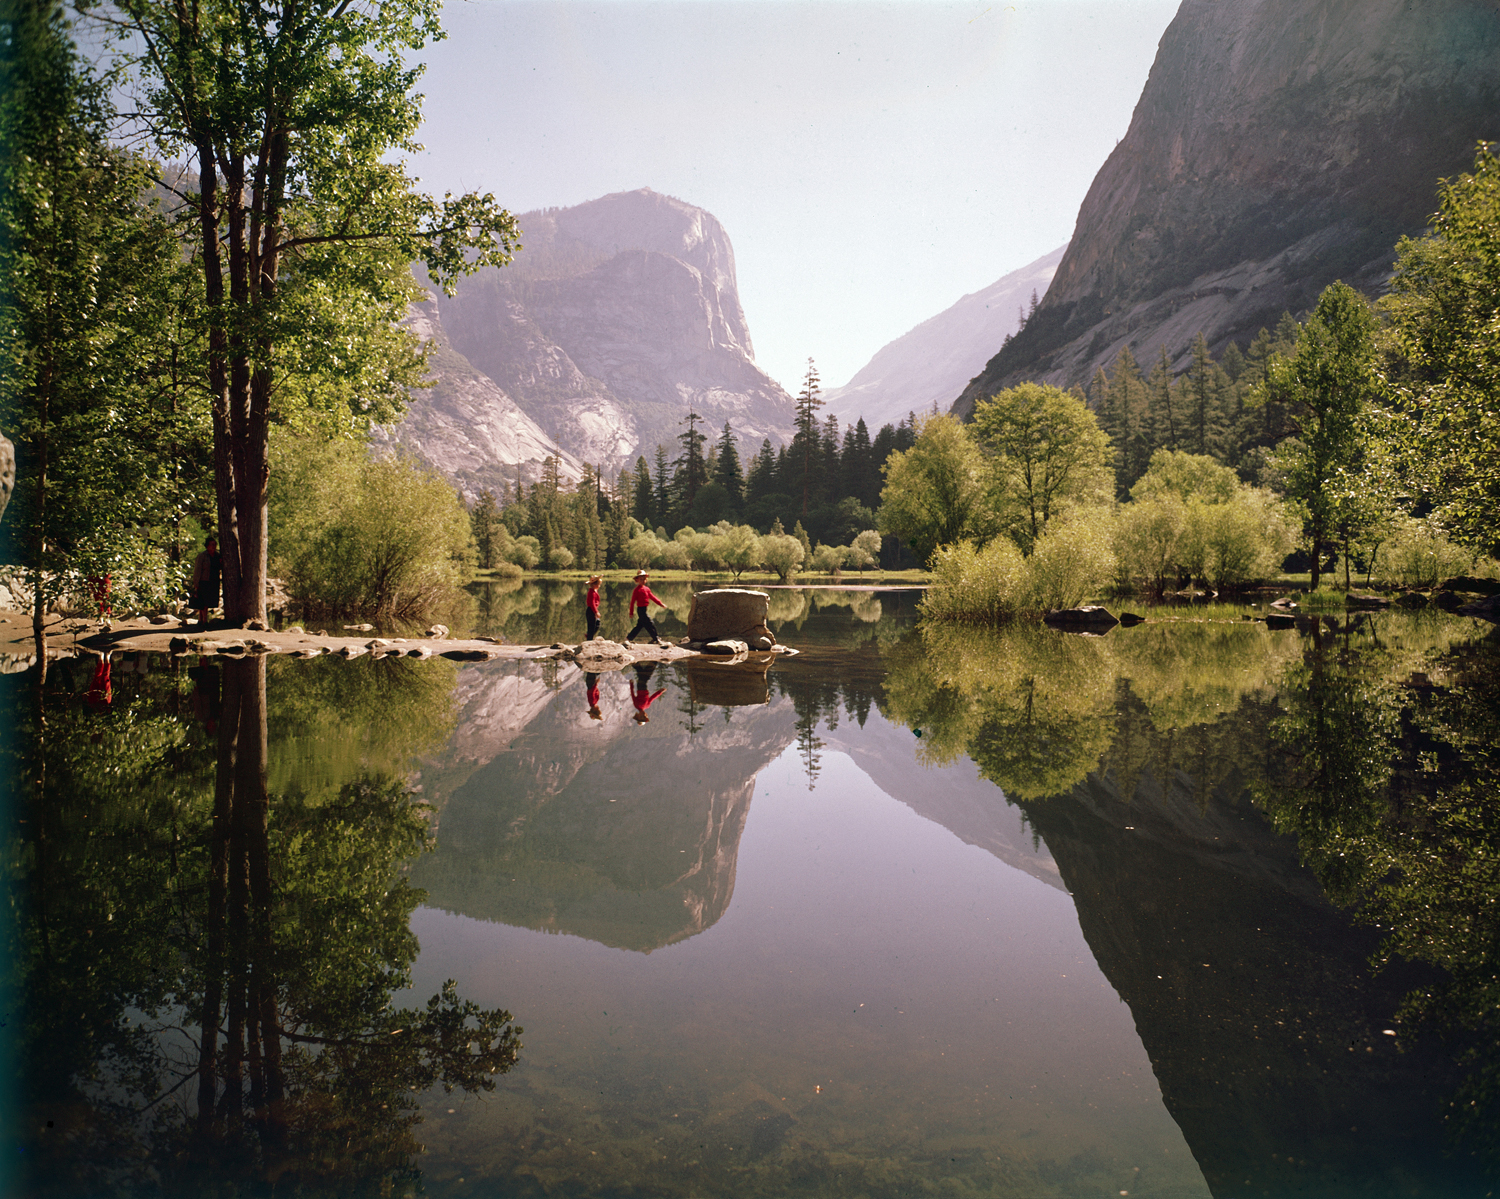 Children walk on a spit of rocks at Mirror Lake in Yosemite National Park, 1962.